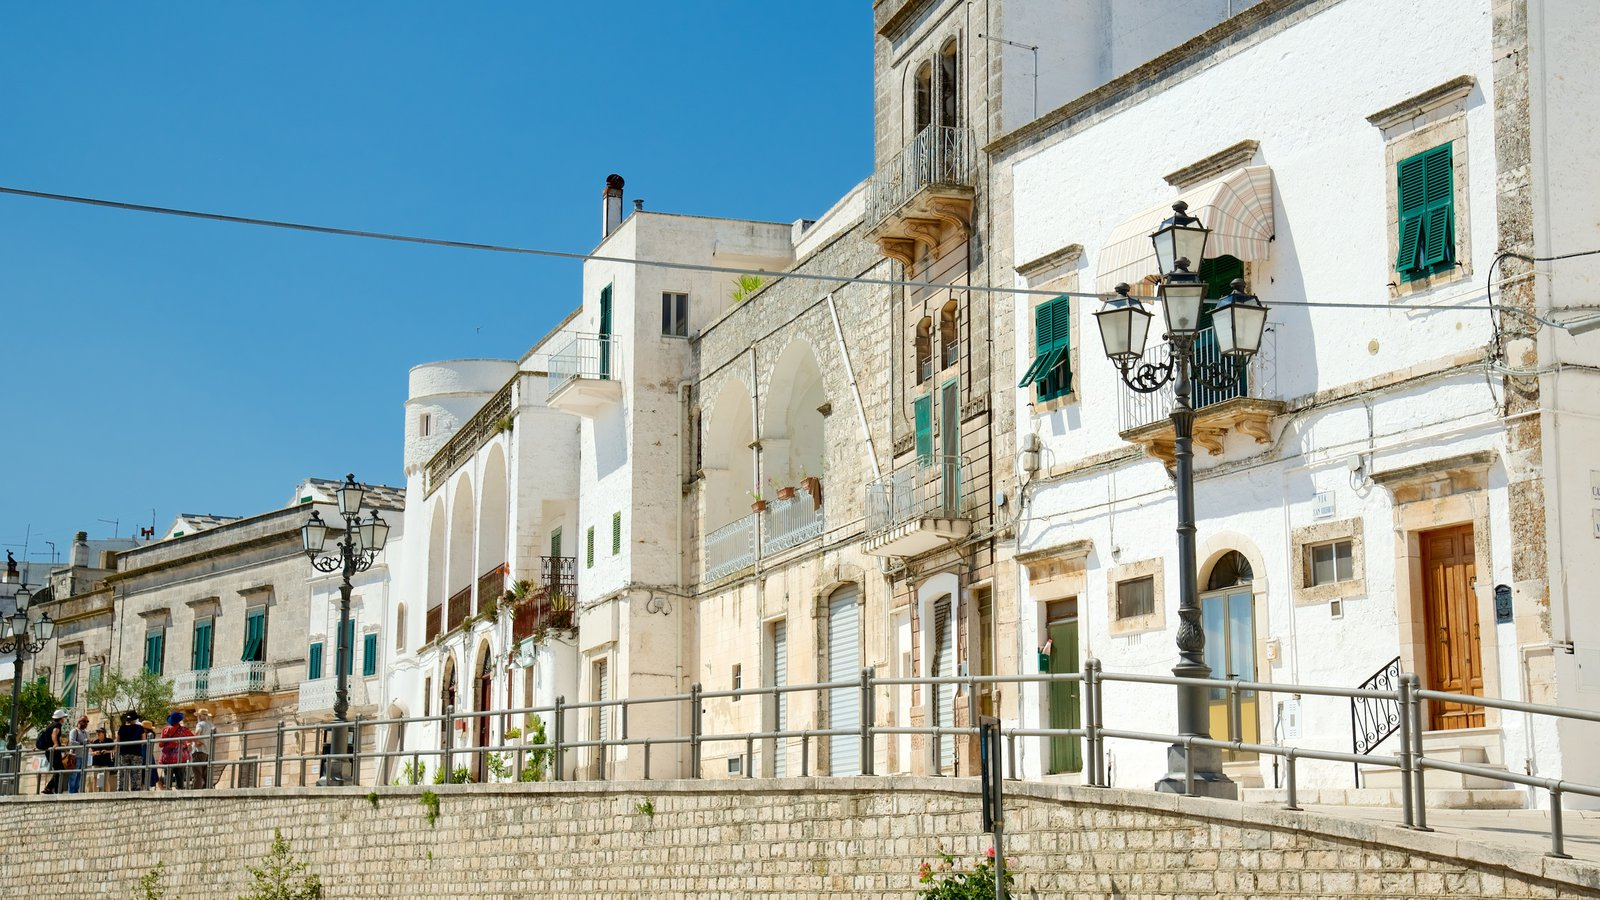 Brindisi showing a city and heritage architecture